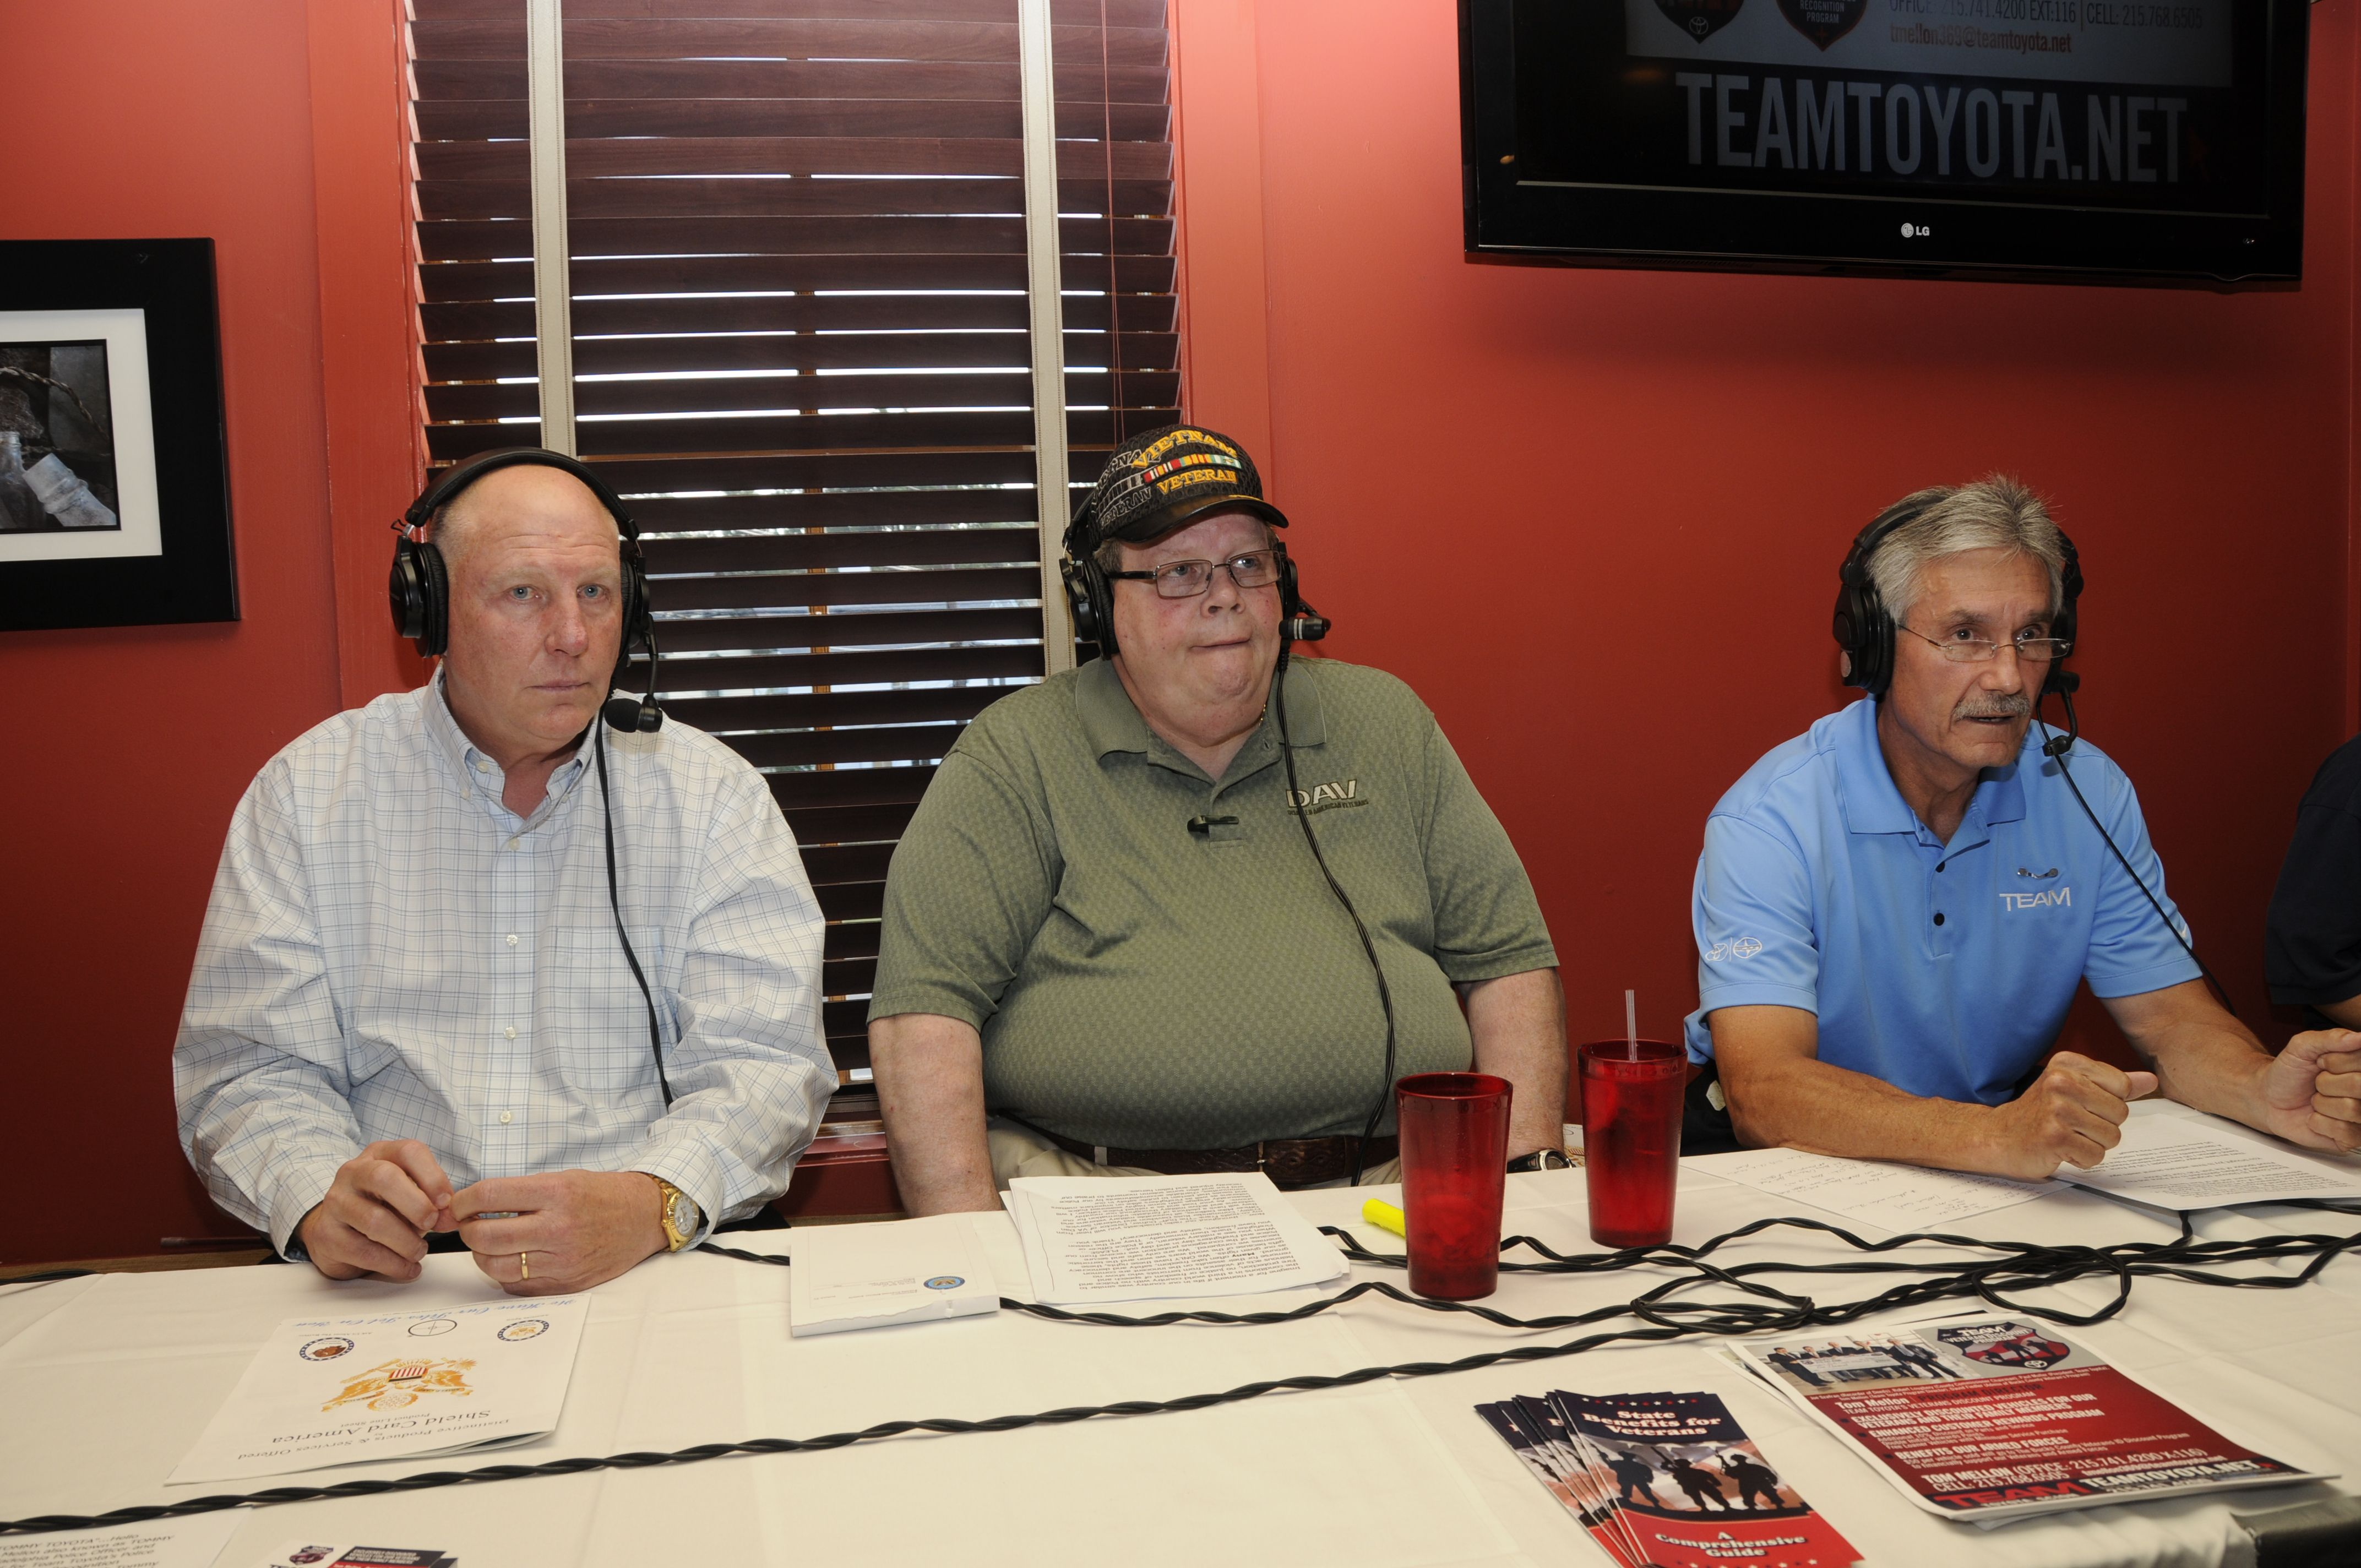 Going Places With Tommy Toyota Radio Show With Paul Muller Owner Team  Toyota Langhorne Princeton Glens Mills PA Frank Duffner, Retired Customs  Officer ...